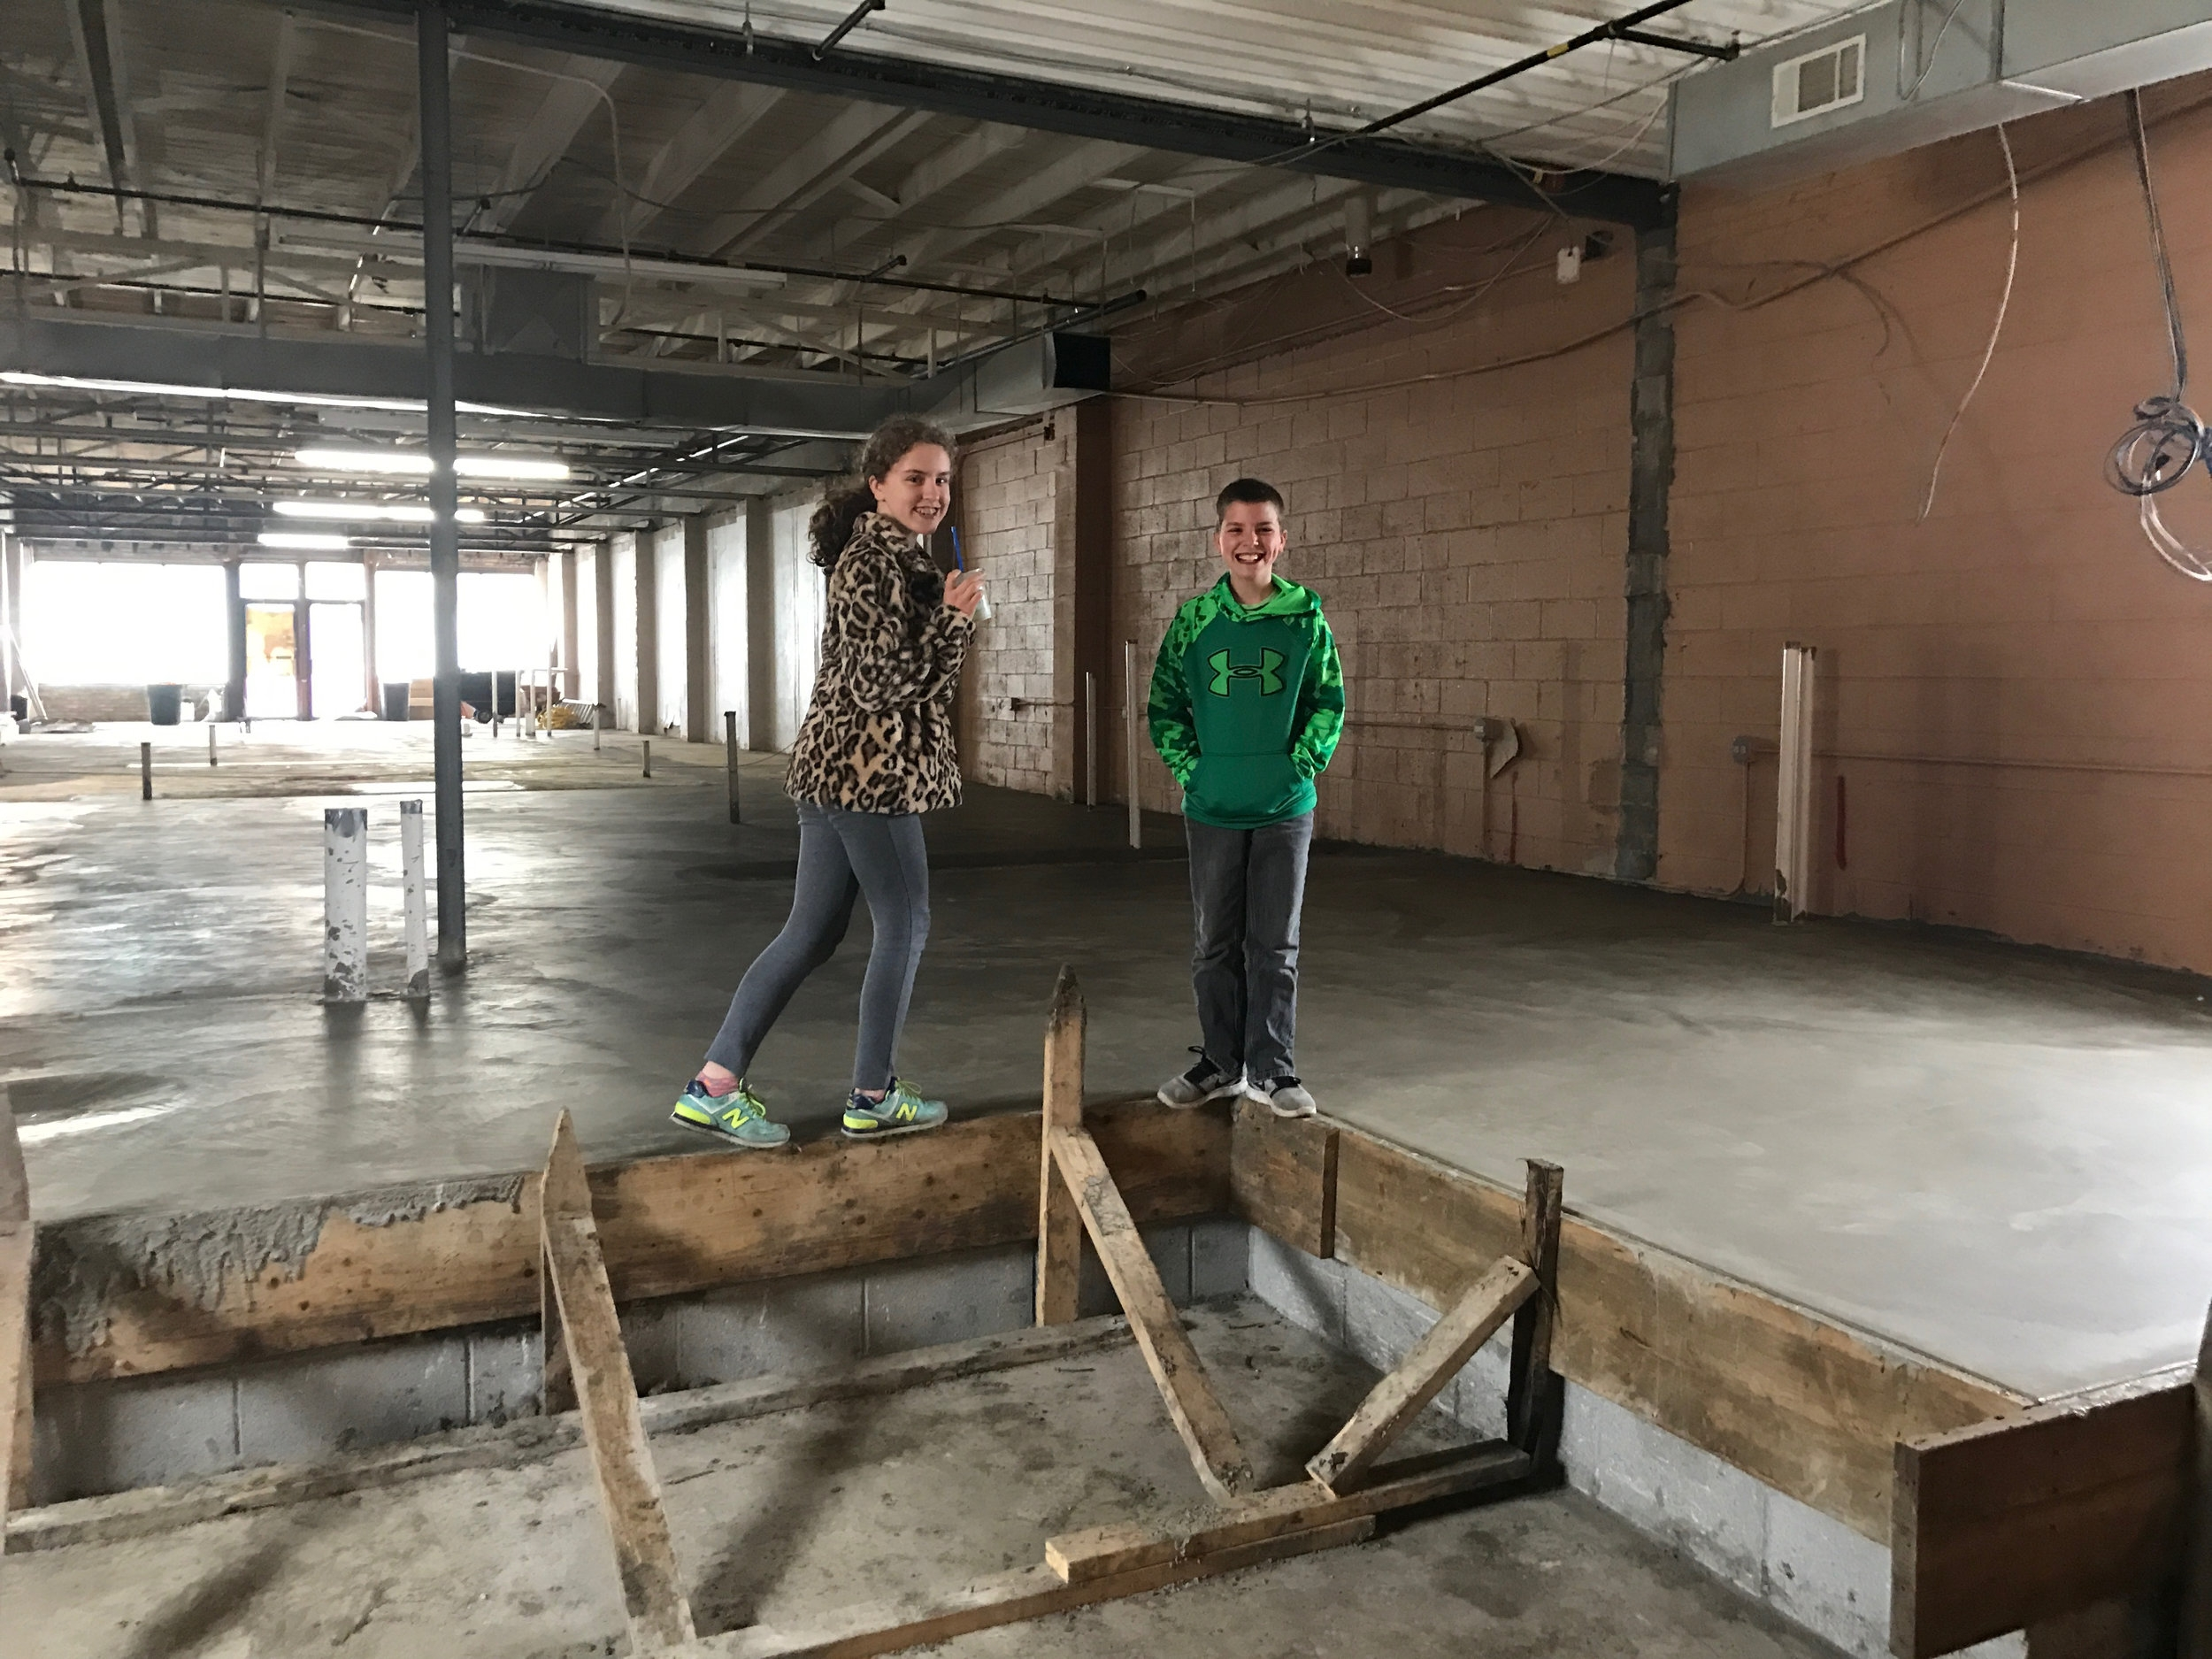 Madeline and Gavin on the construction site of the Veterinary Hospital in Westmont, IL